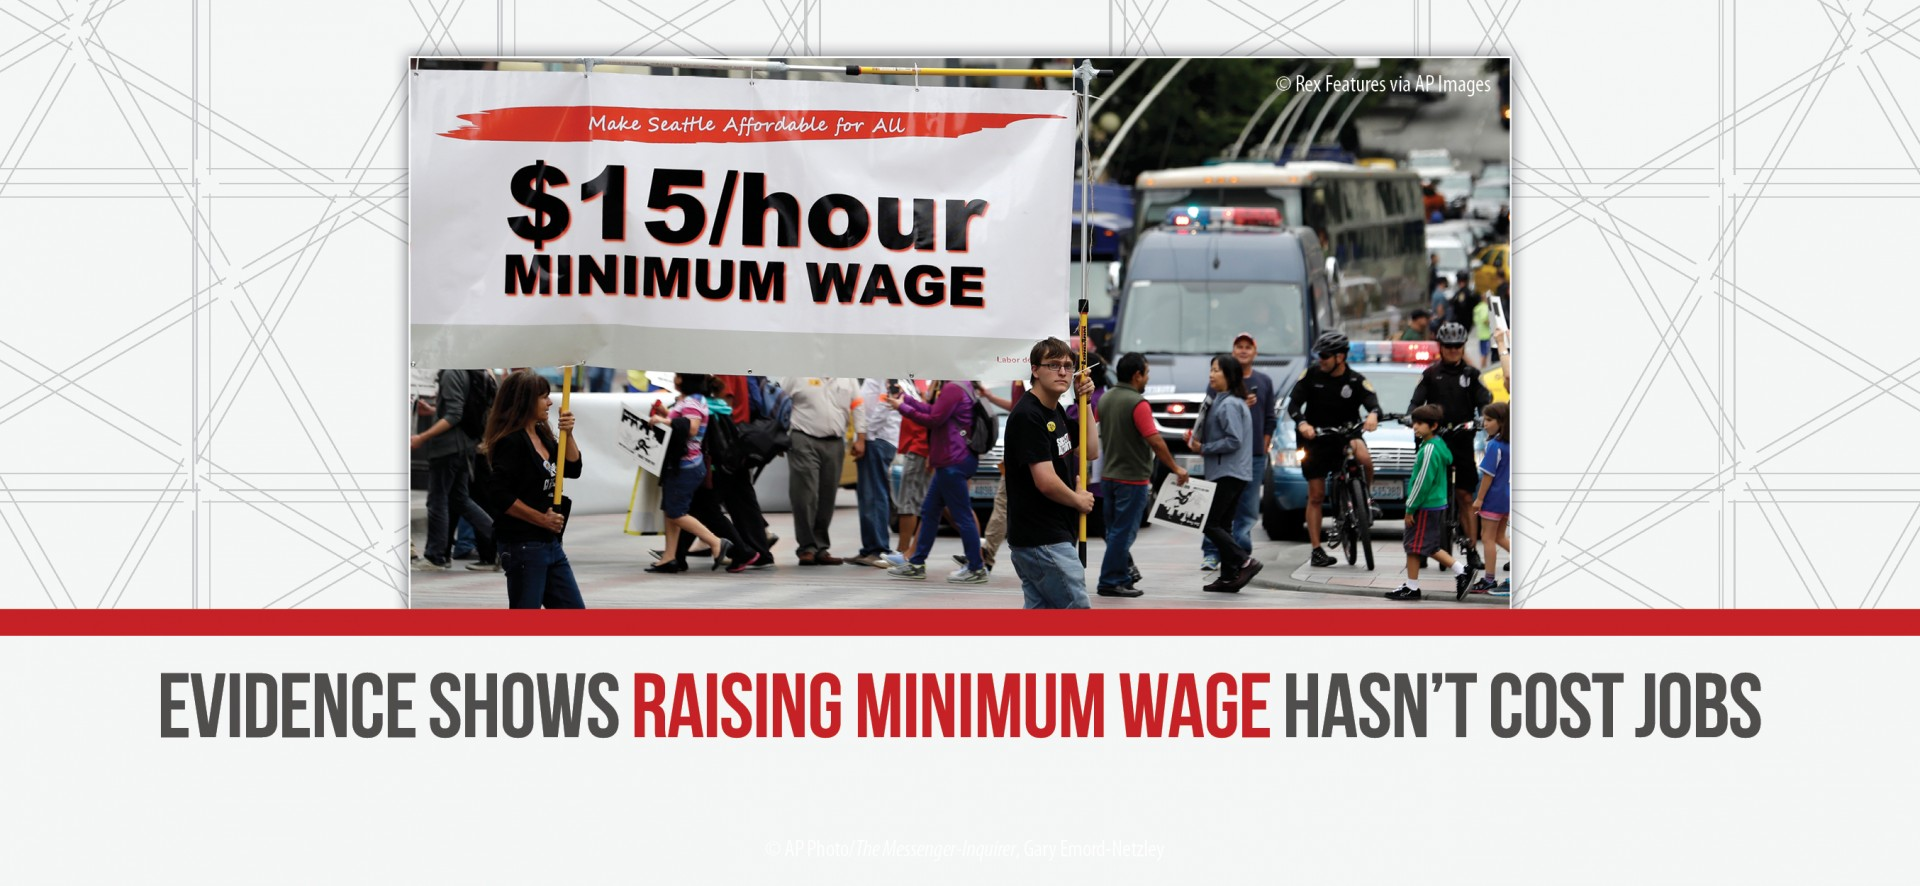 003 2014 Mar Apr Images5 Essay Example Why Should Minimum Wage Unusual Be Raised We Raise Not Increase 1920